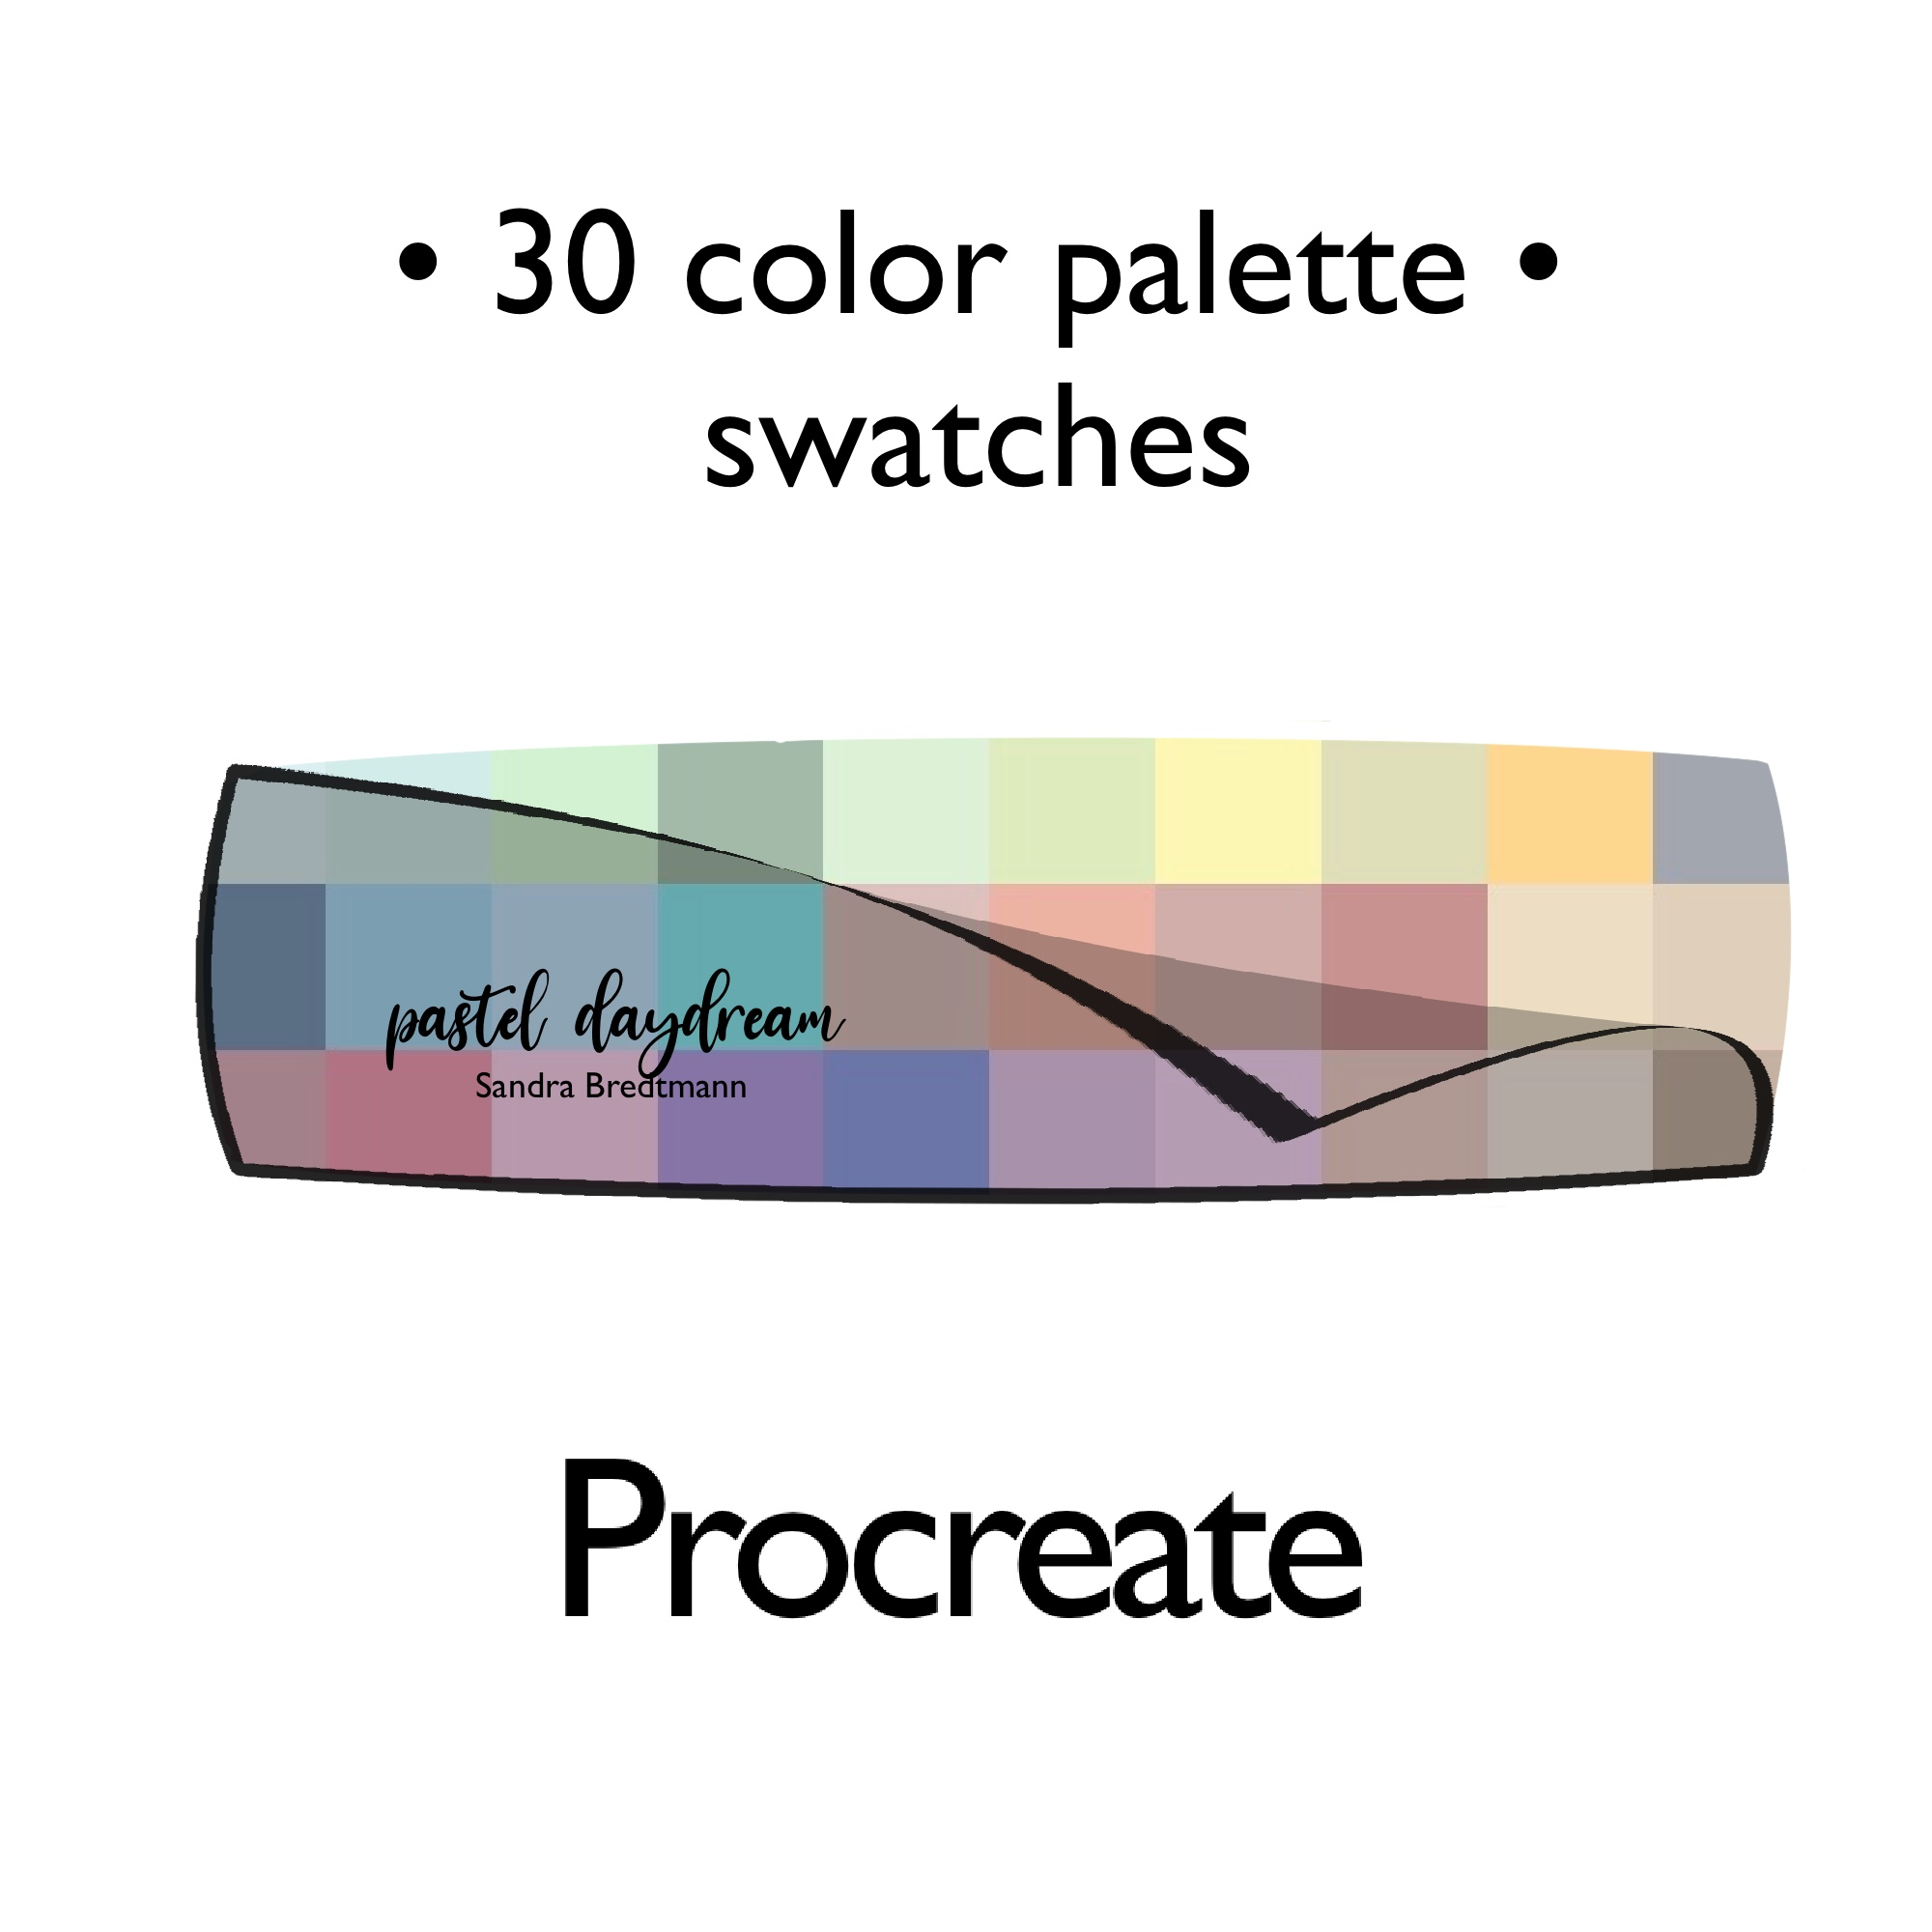 Pastell Tagtraum Farbpalette Procreate Adobe Photoshop oder Illustrator swatches